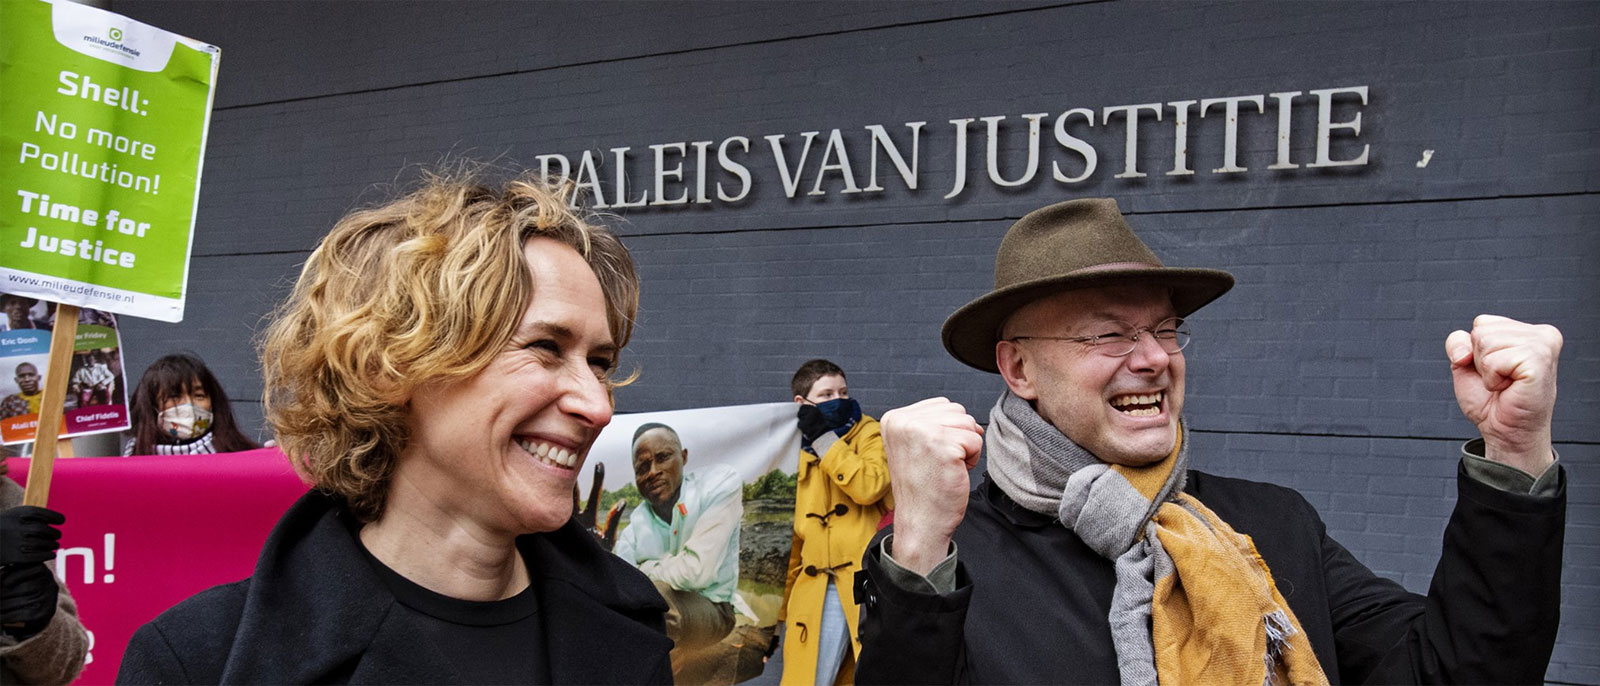 Milieudefensie celebrate winning Shell court case (c) Milieudefensie/Friends of the Earth Netherlands